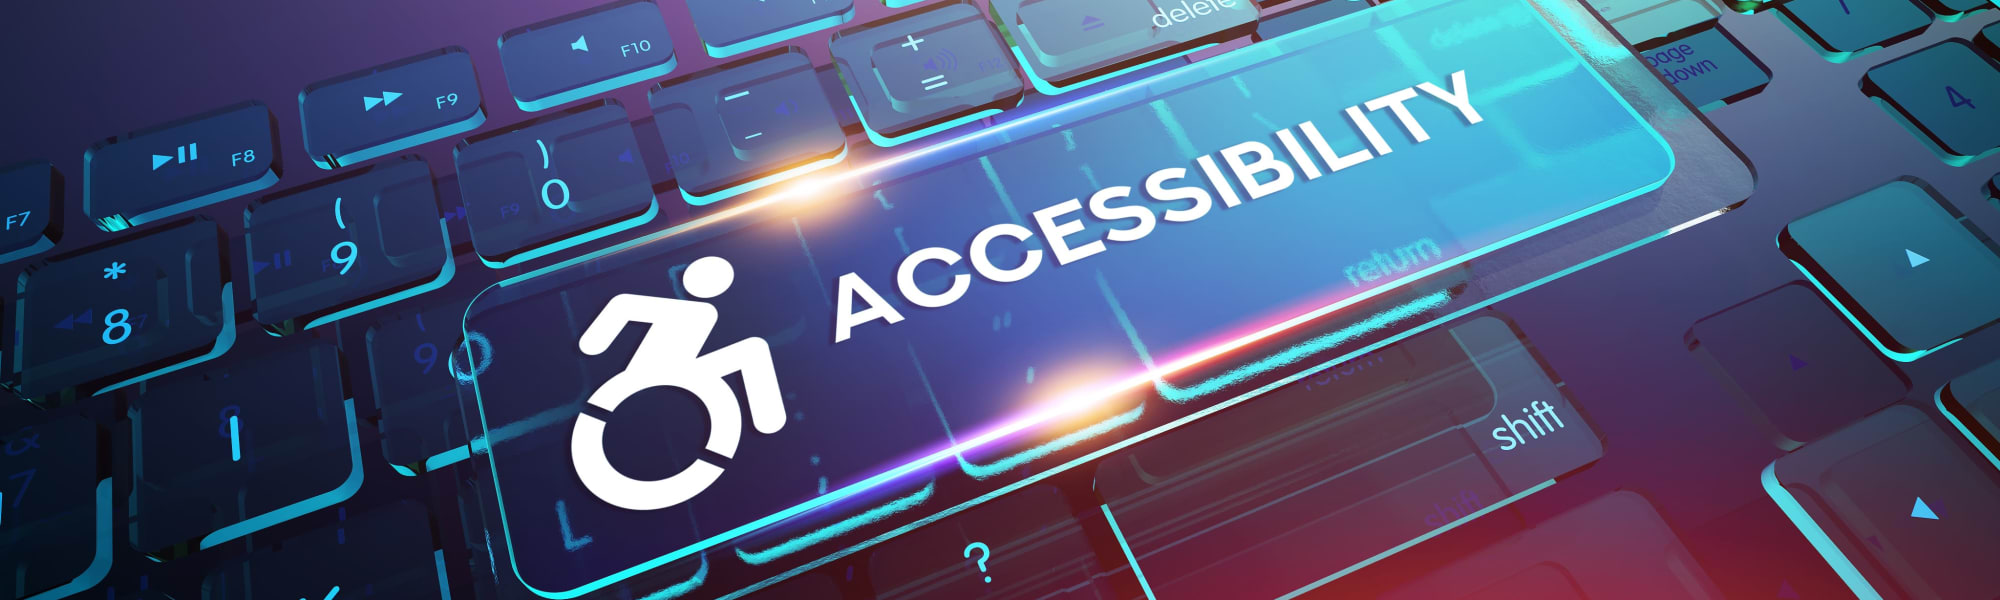 Accessibility policy for Olympus Solaire in Albuquerque, New Mexico